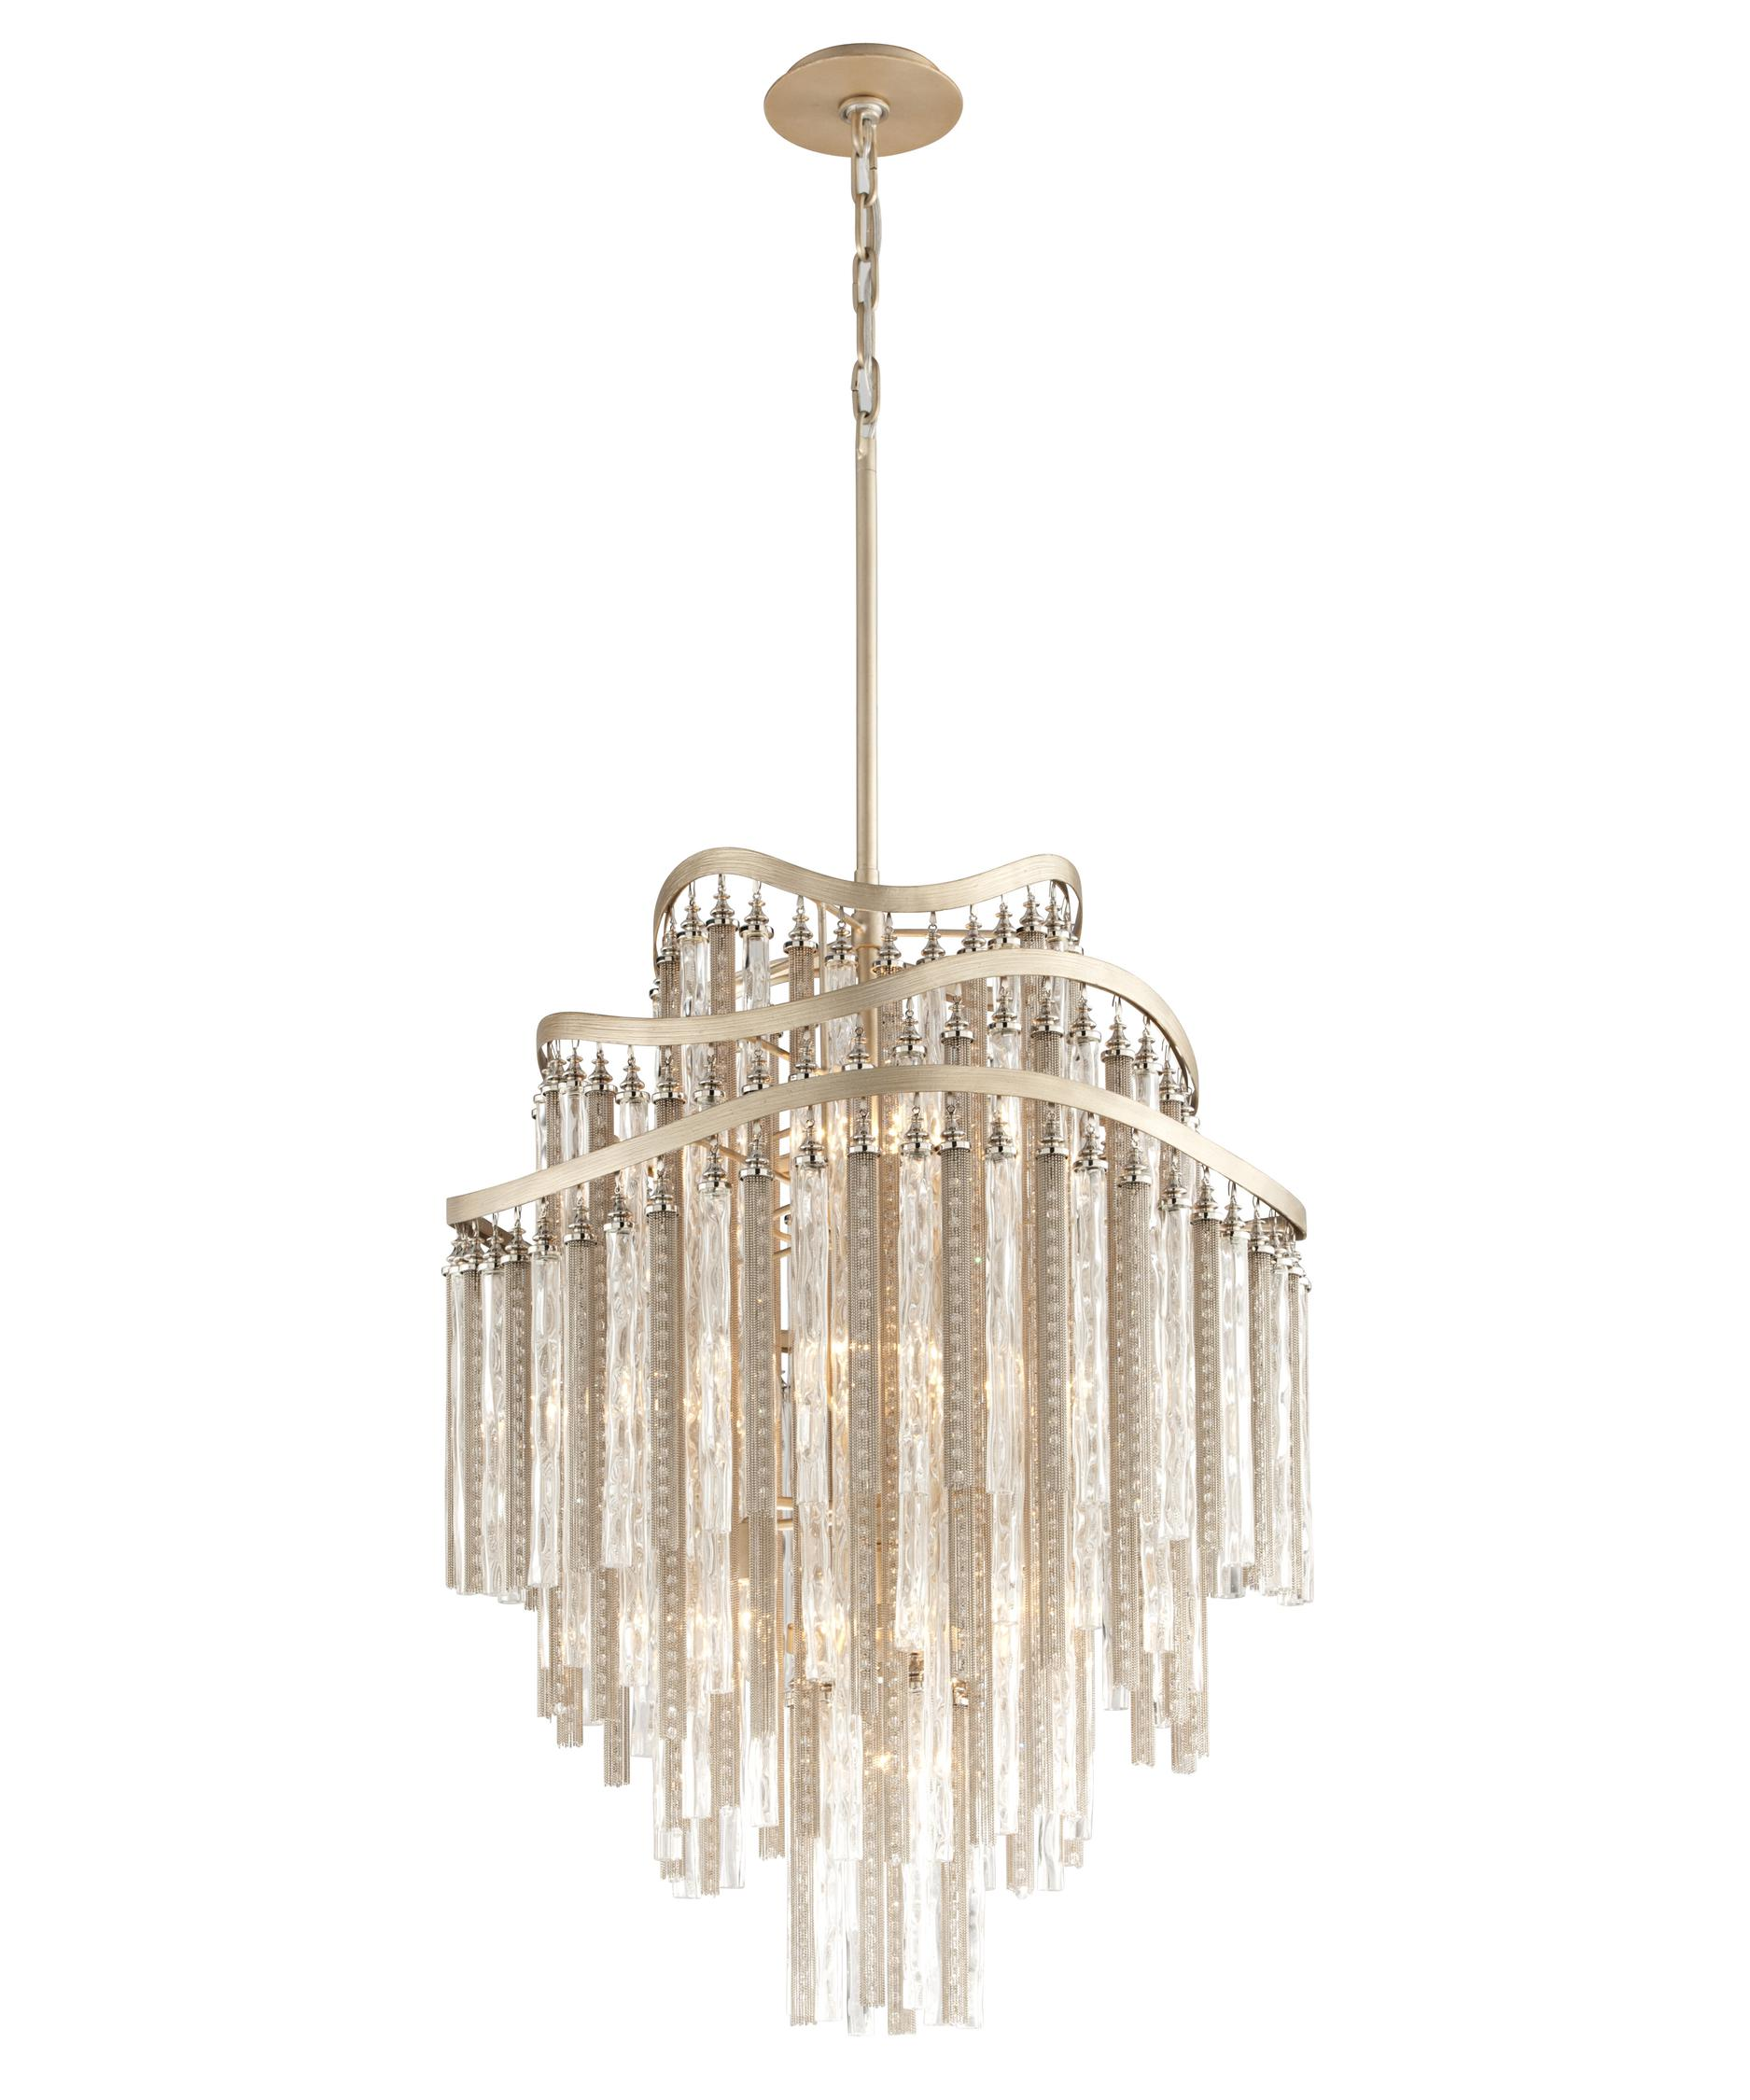 Corbett Lighting 176 710 Chimera 26 Inch Large Pendant Capitol Lighting 1 8